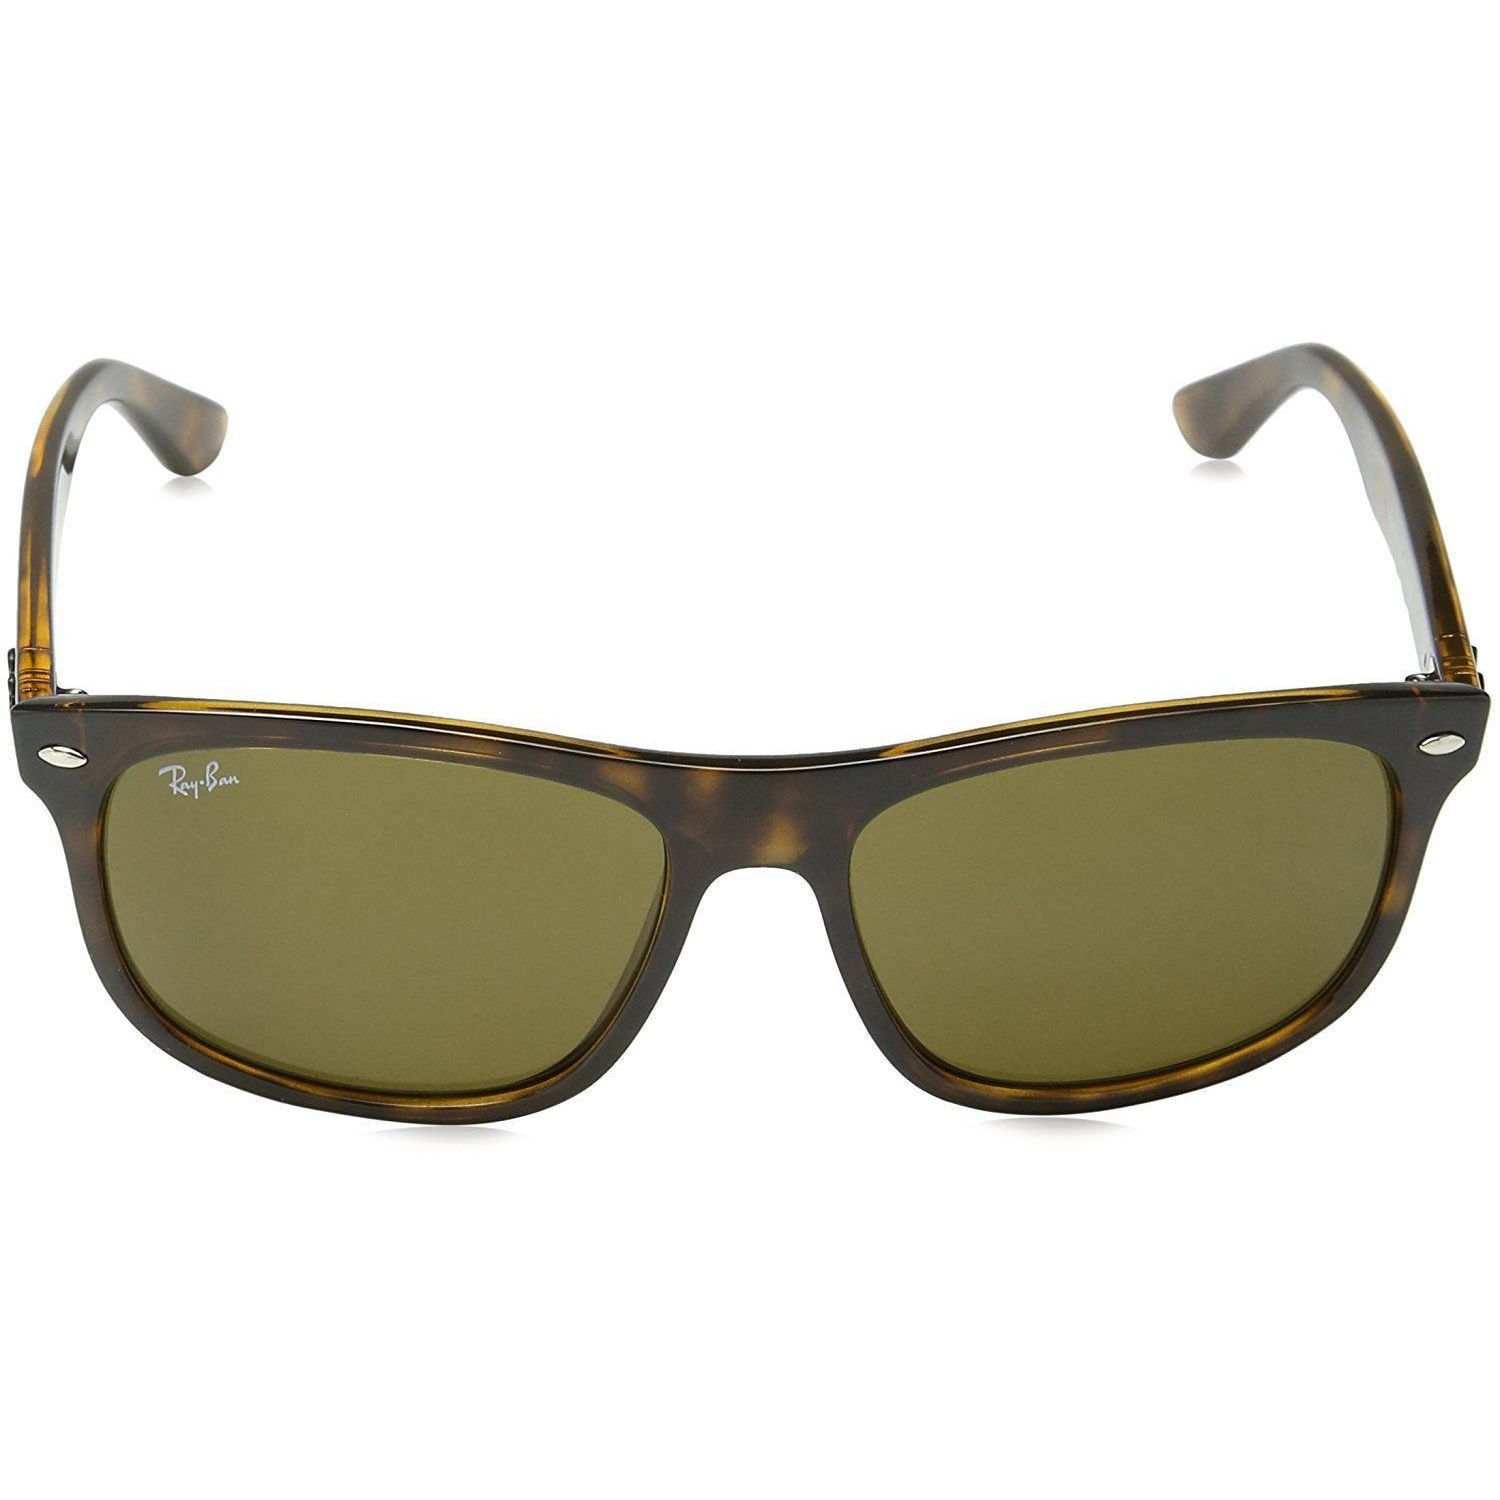 b49334573ab Shop Ray-Ban RB4226 710 73 Men s Tortoise Frame Brown Classic Lens  Sunglasses - Free Shipping Today - Overstock.com - 15079551